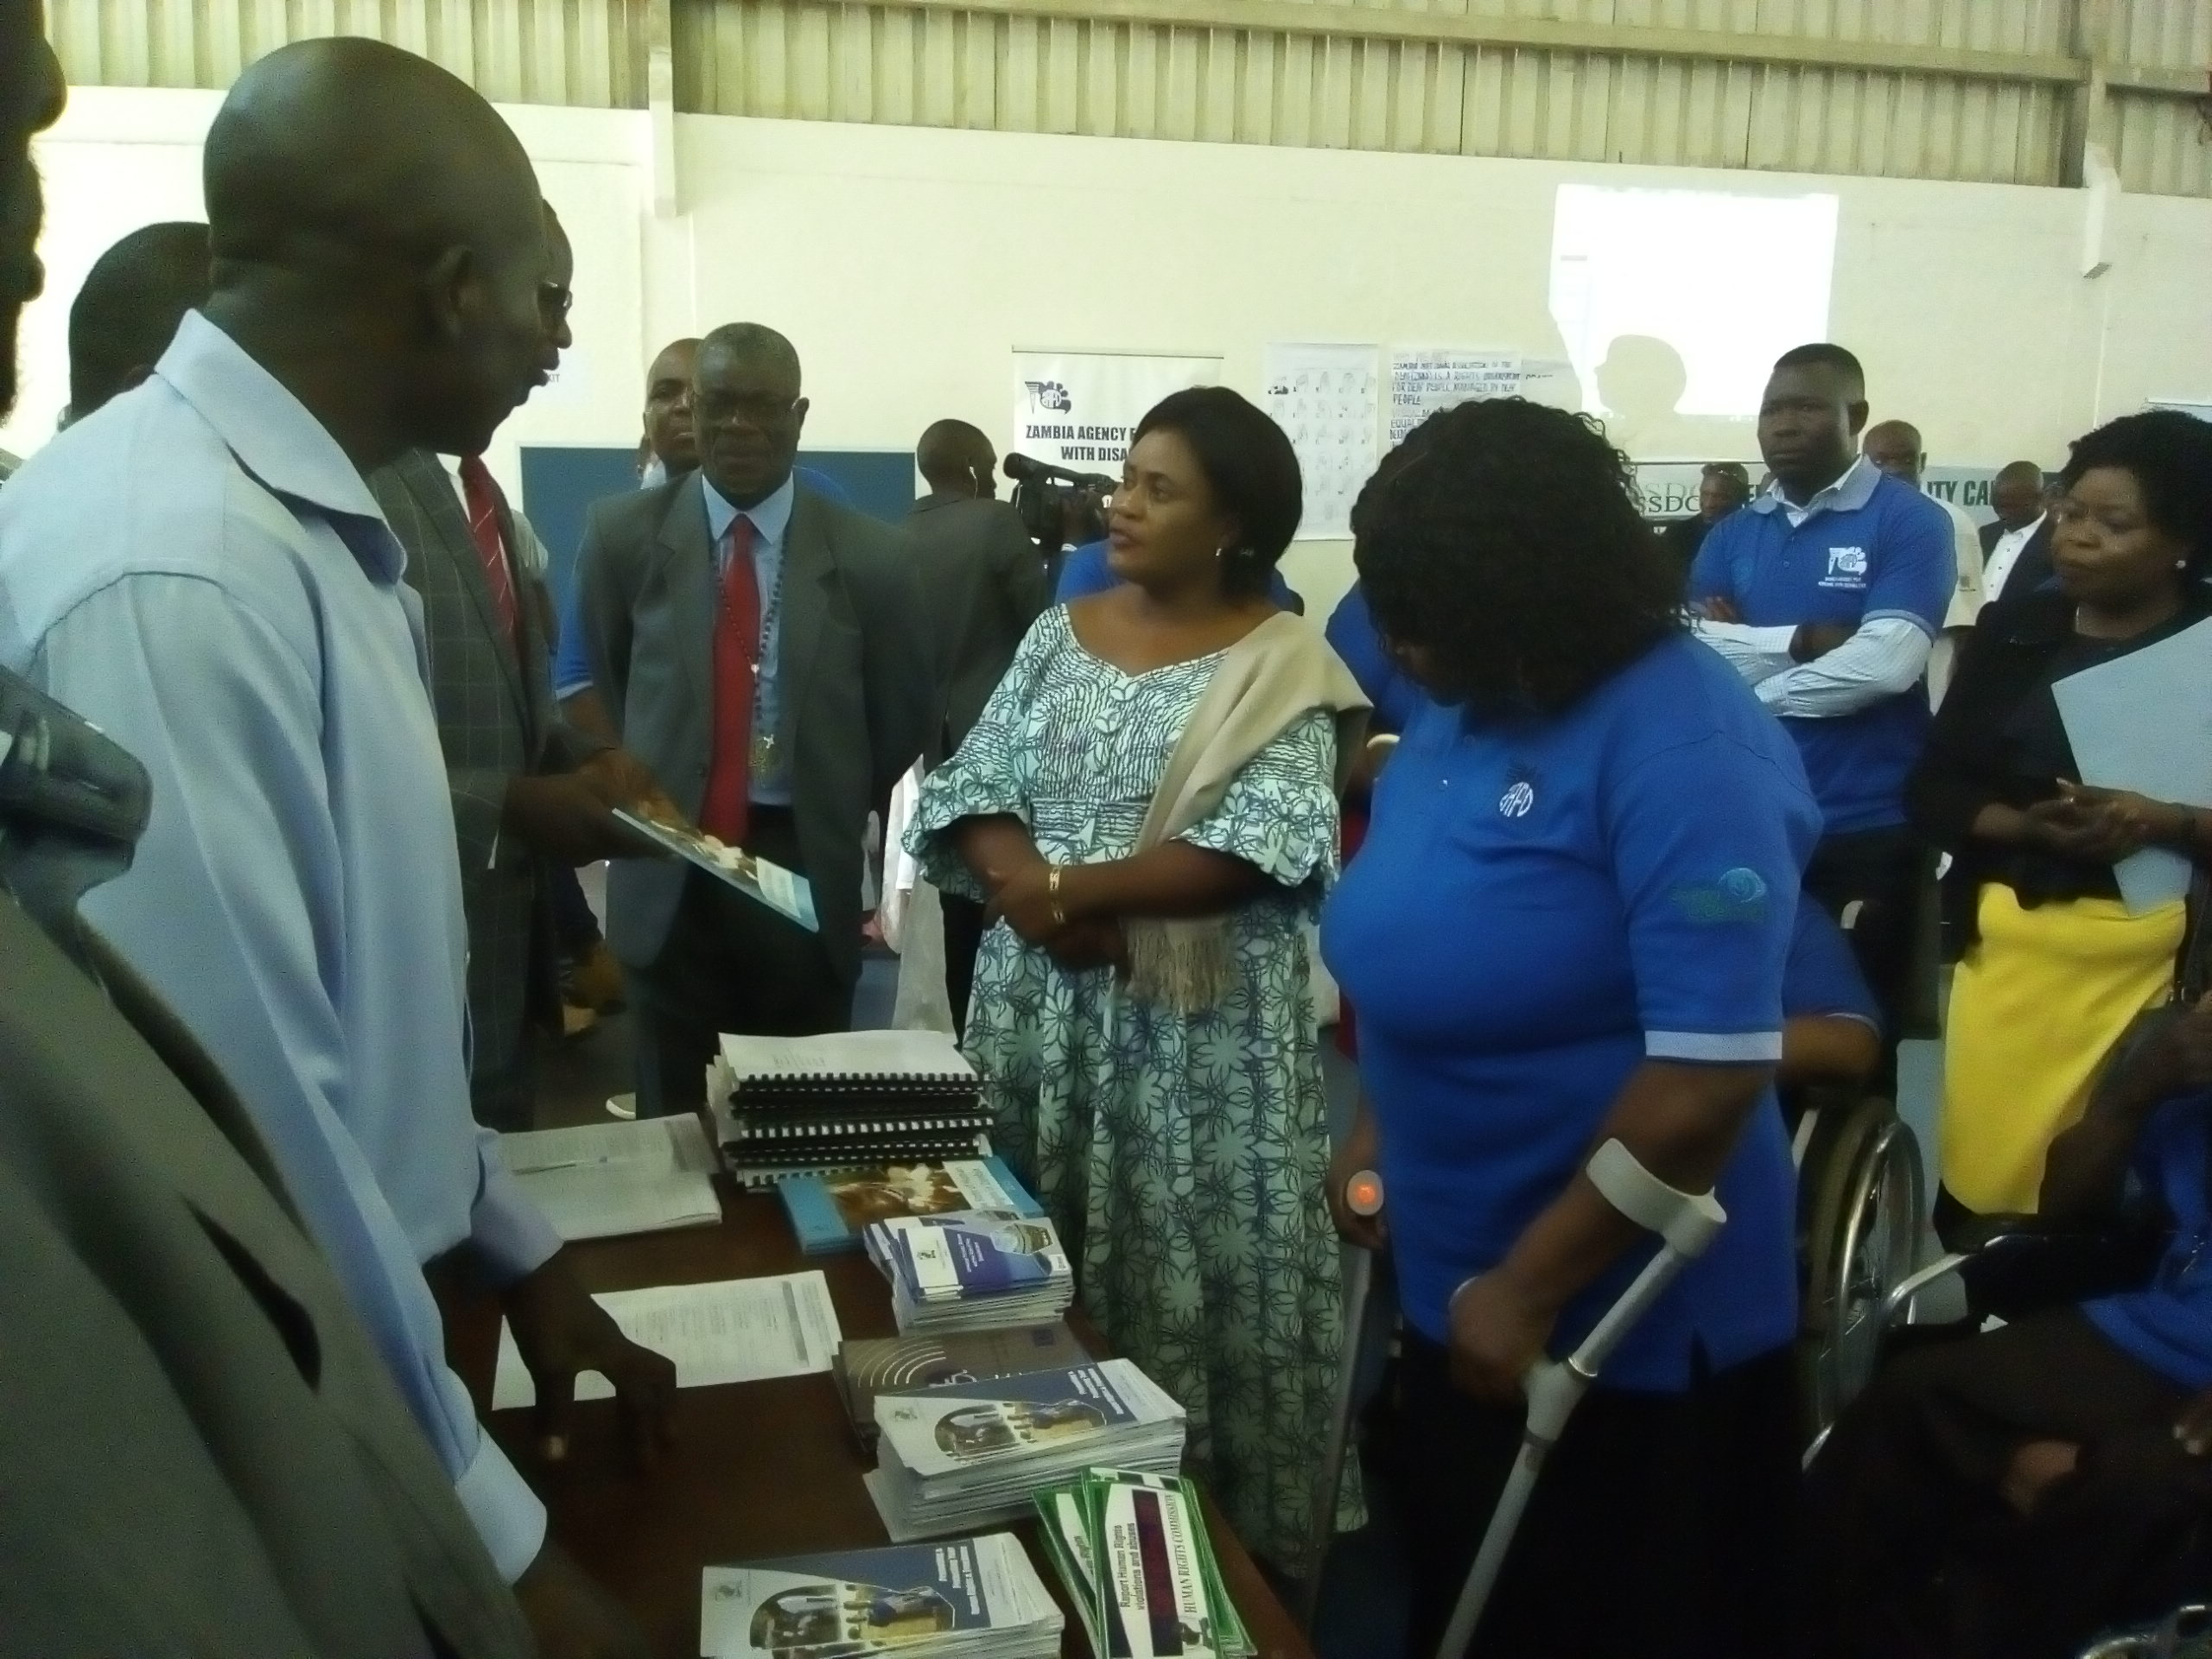 Minister of Development & Social Services, PS -Ministry Of Livestock & Fisheries and ZAPD-Board Member at the Exibition stand